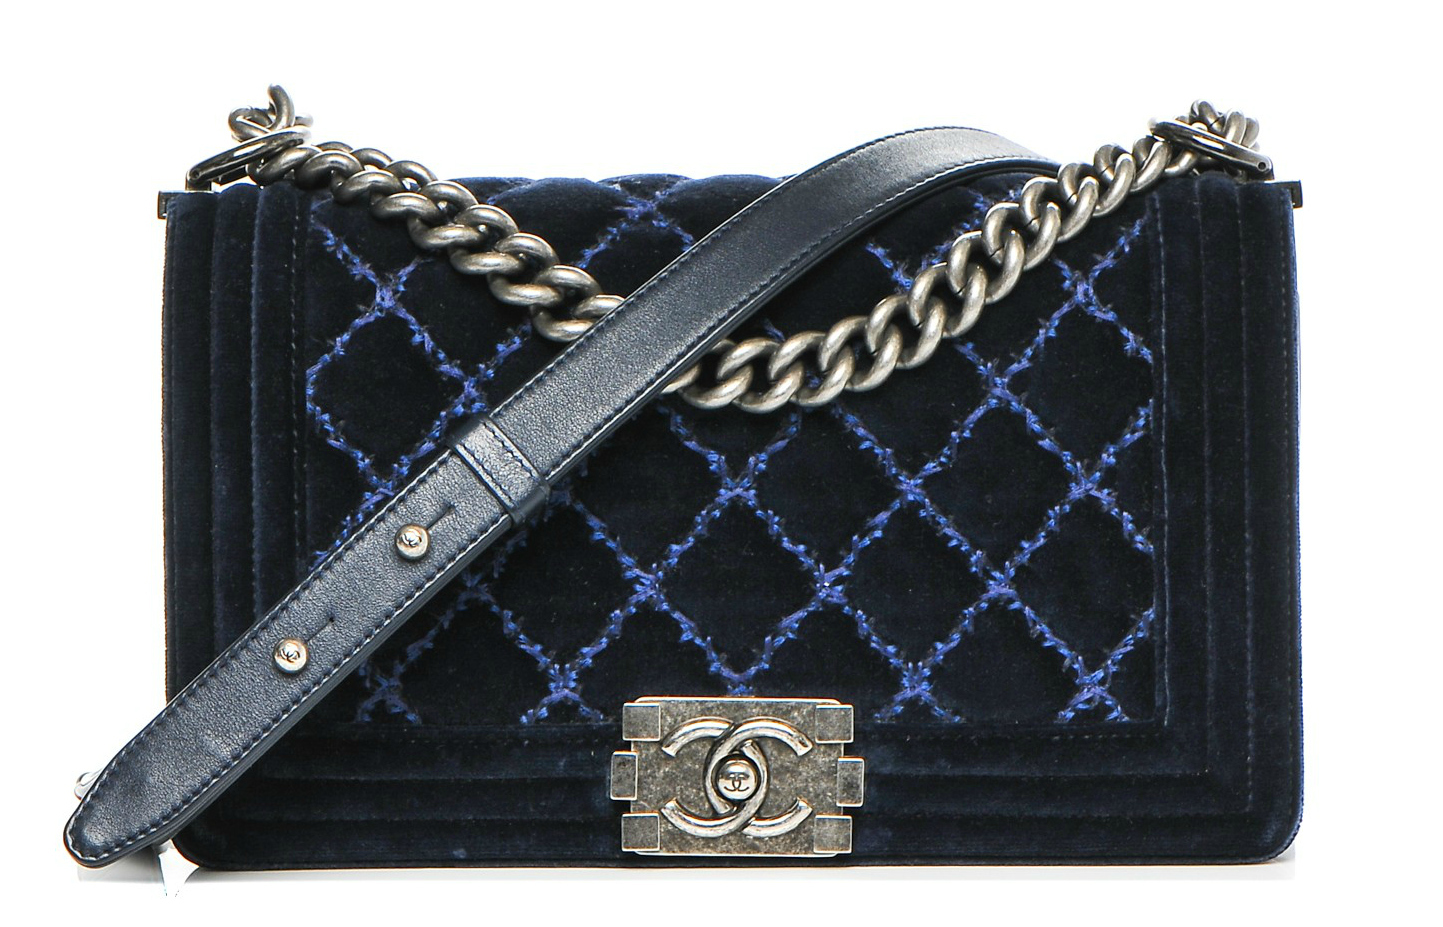 Chanel velvet quilted medium boy flap dark navy blue 00he